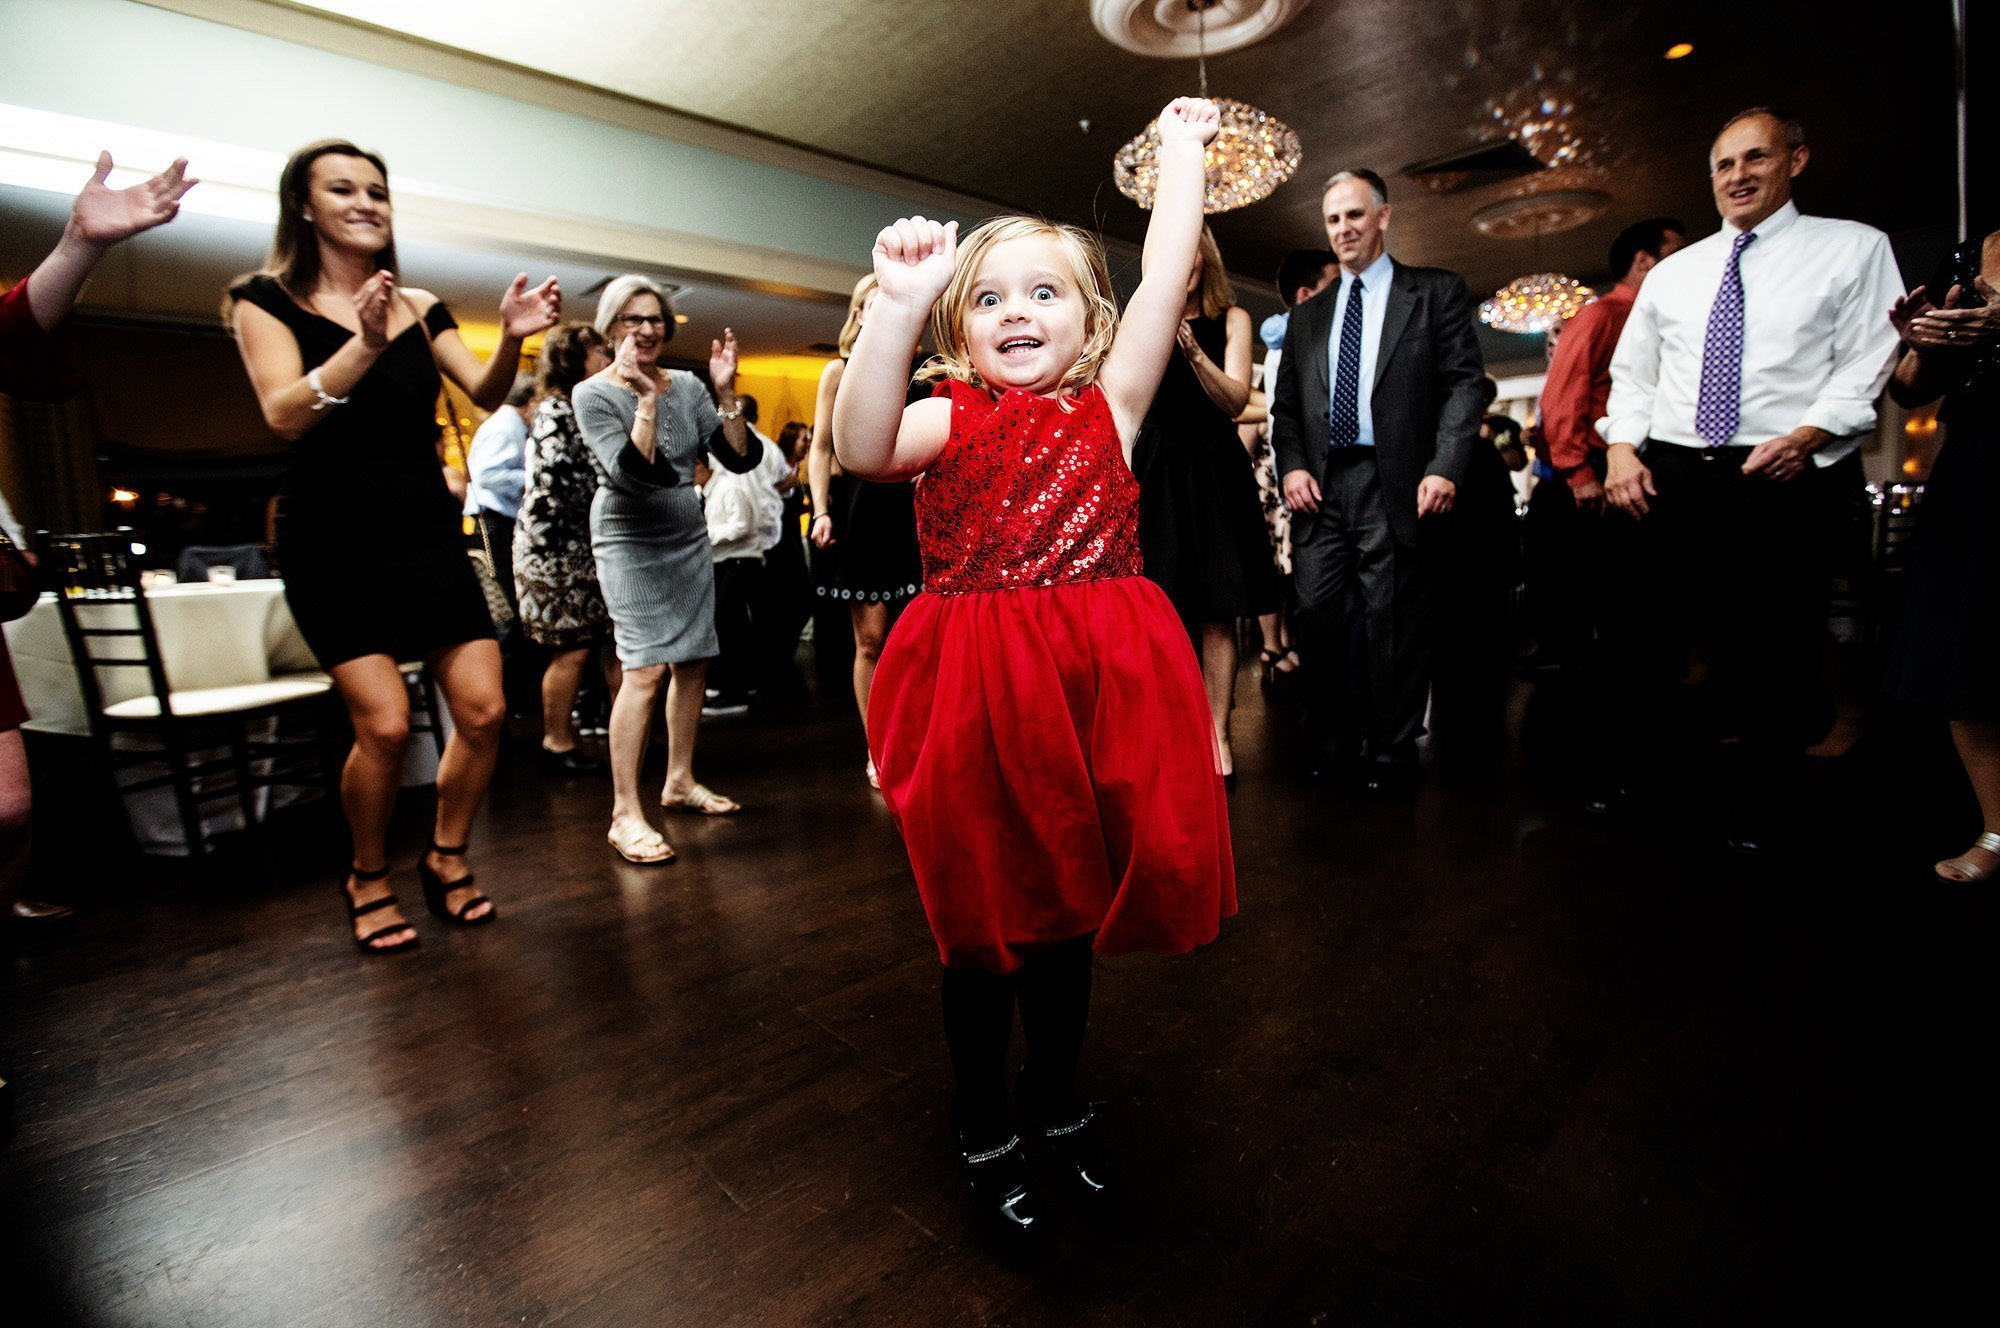 An excited girl dances during The Villa at Ridder Country Club wedding reception.